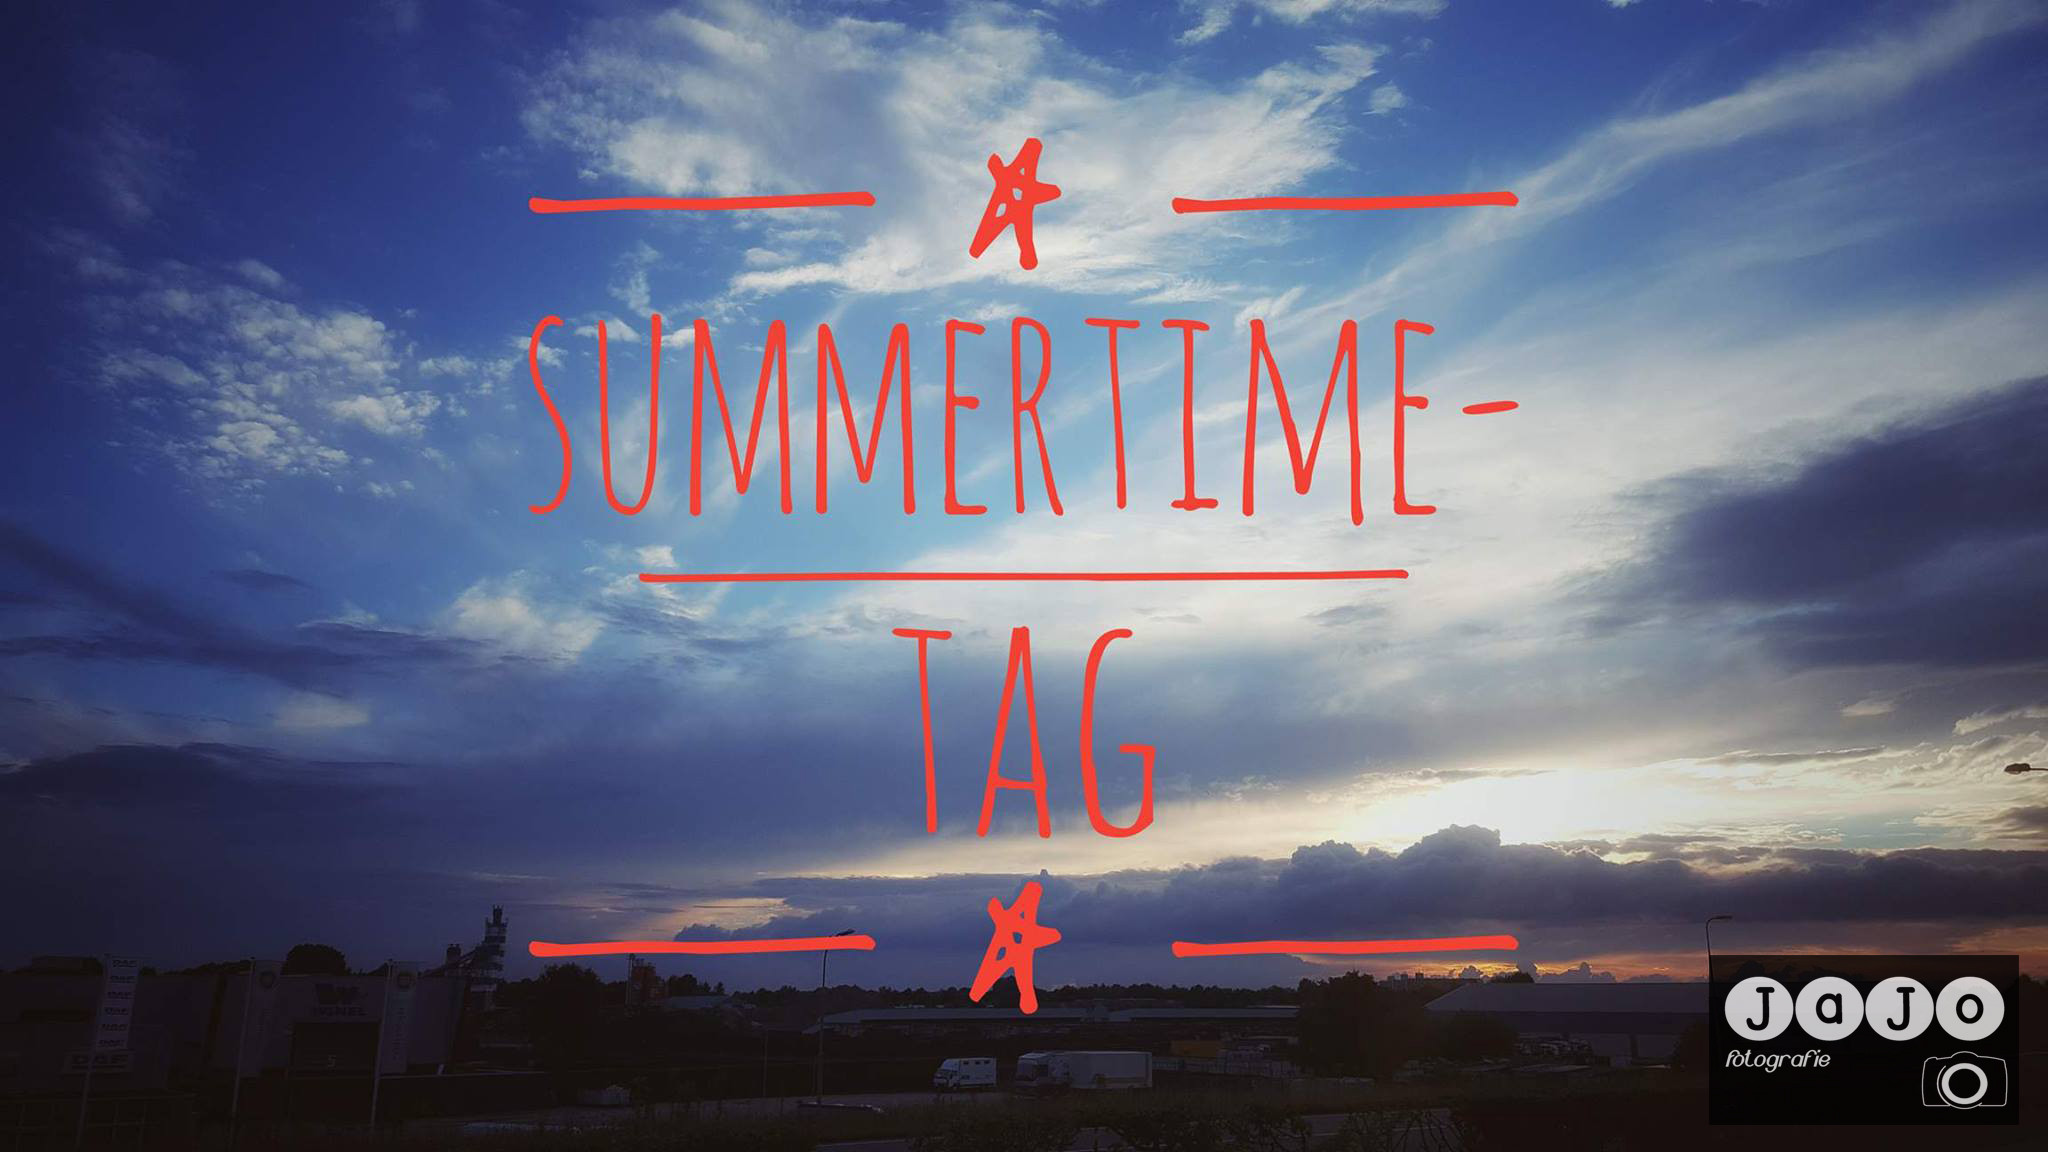 Summertime – Tag